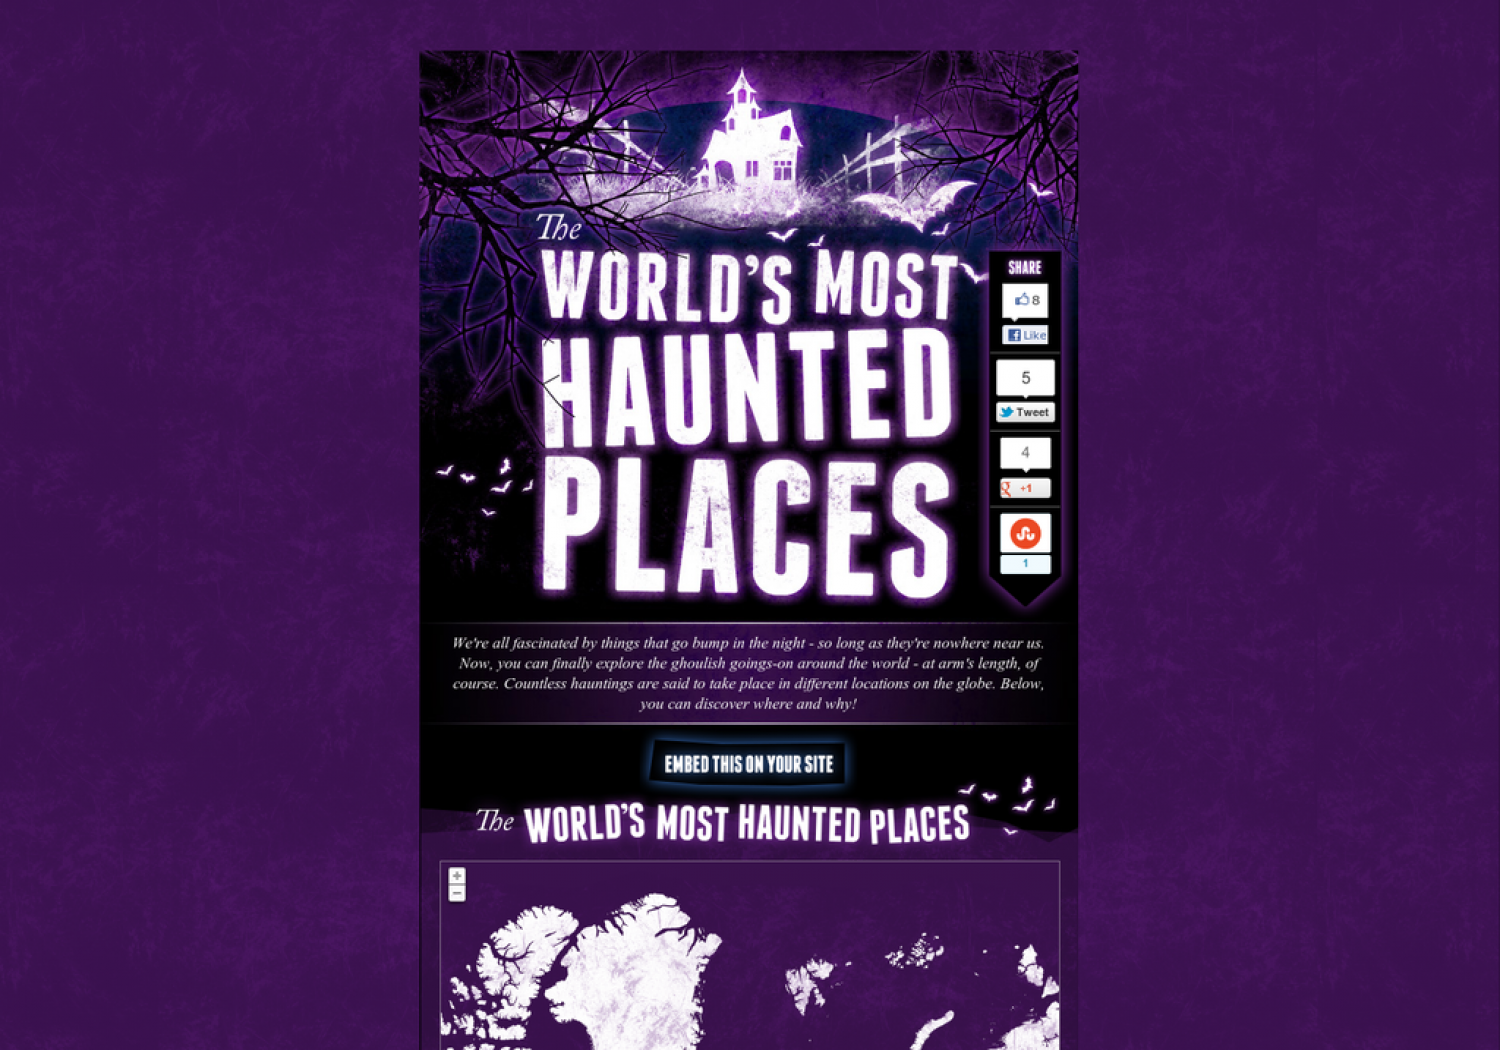 The World's Most Haunted Places Infographic